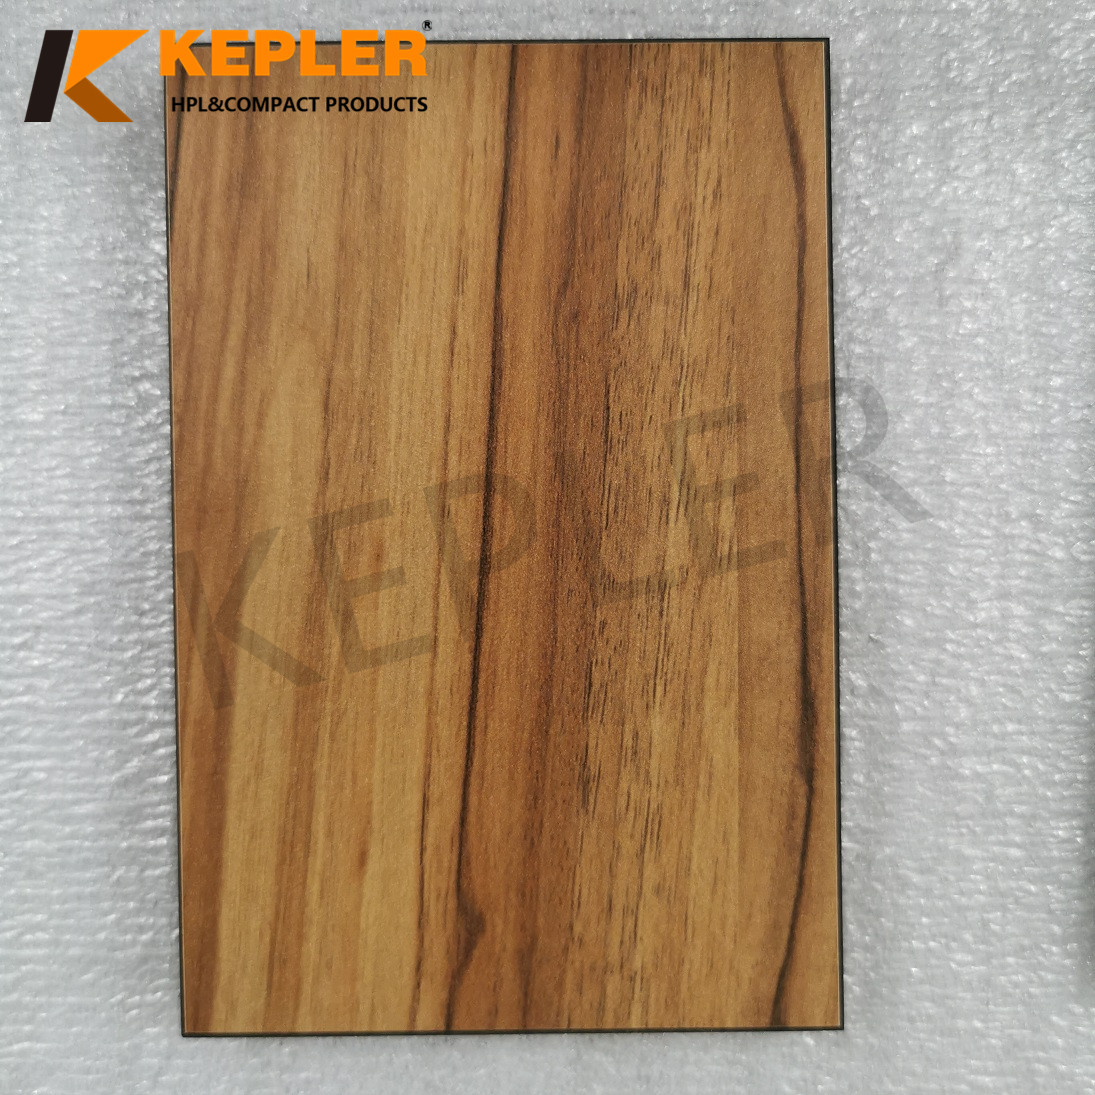 Kepler HPL Compact Laminate Board for Locker